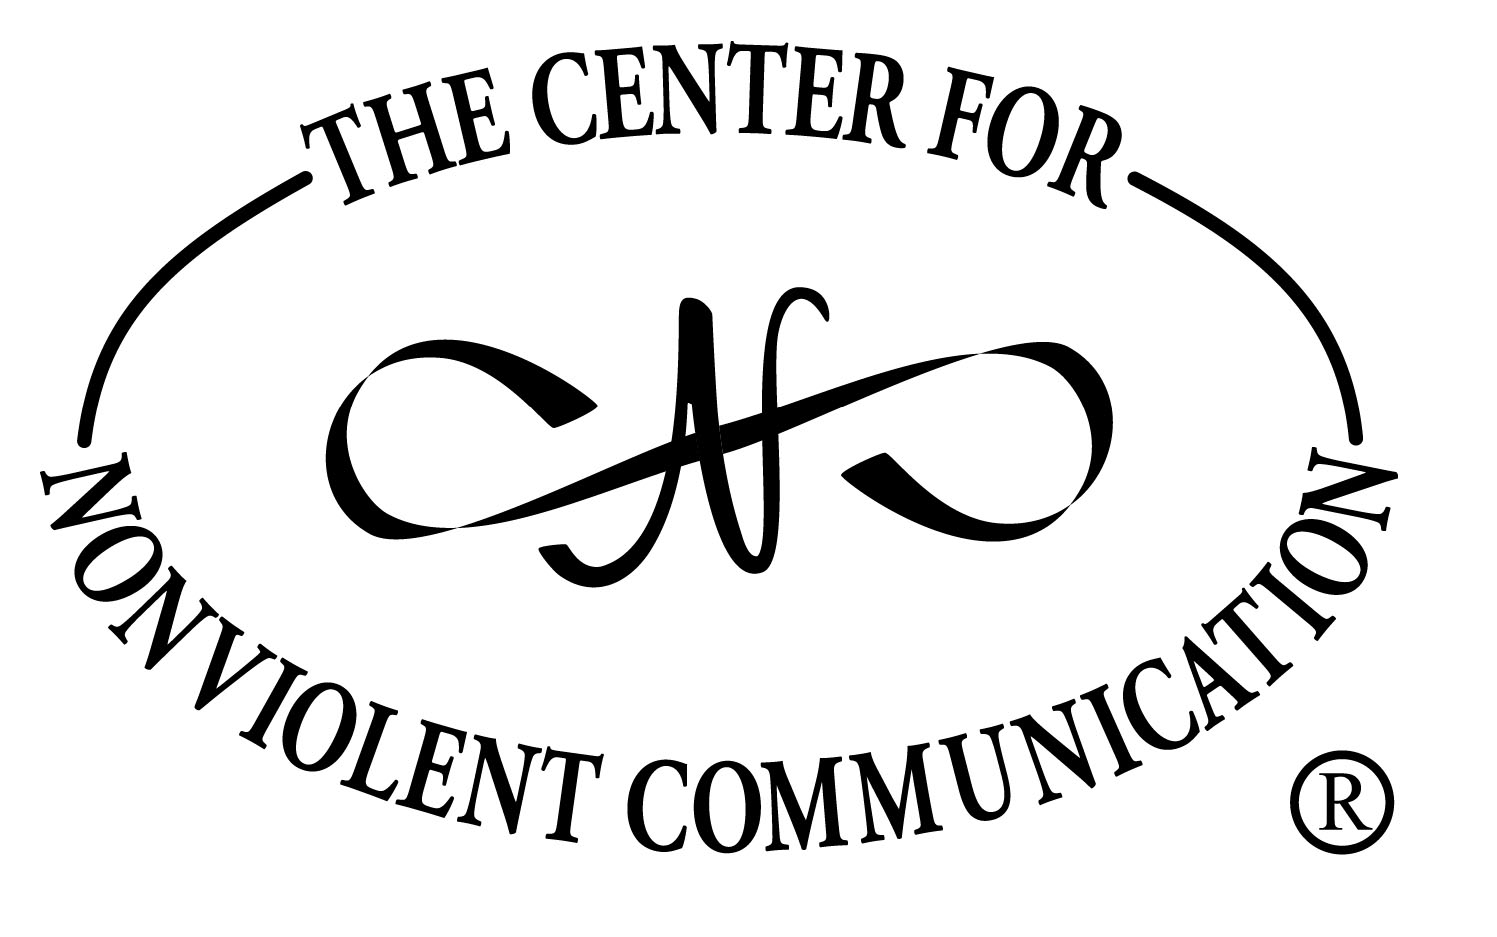 Network for Nonviolent Communication